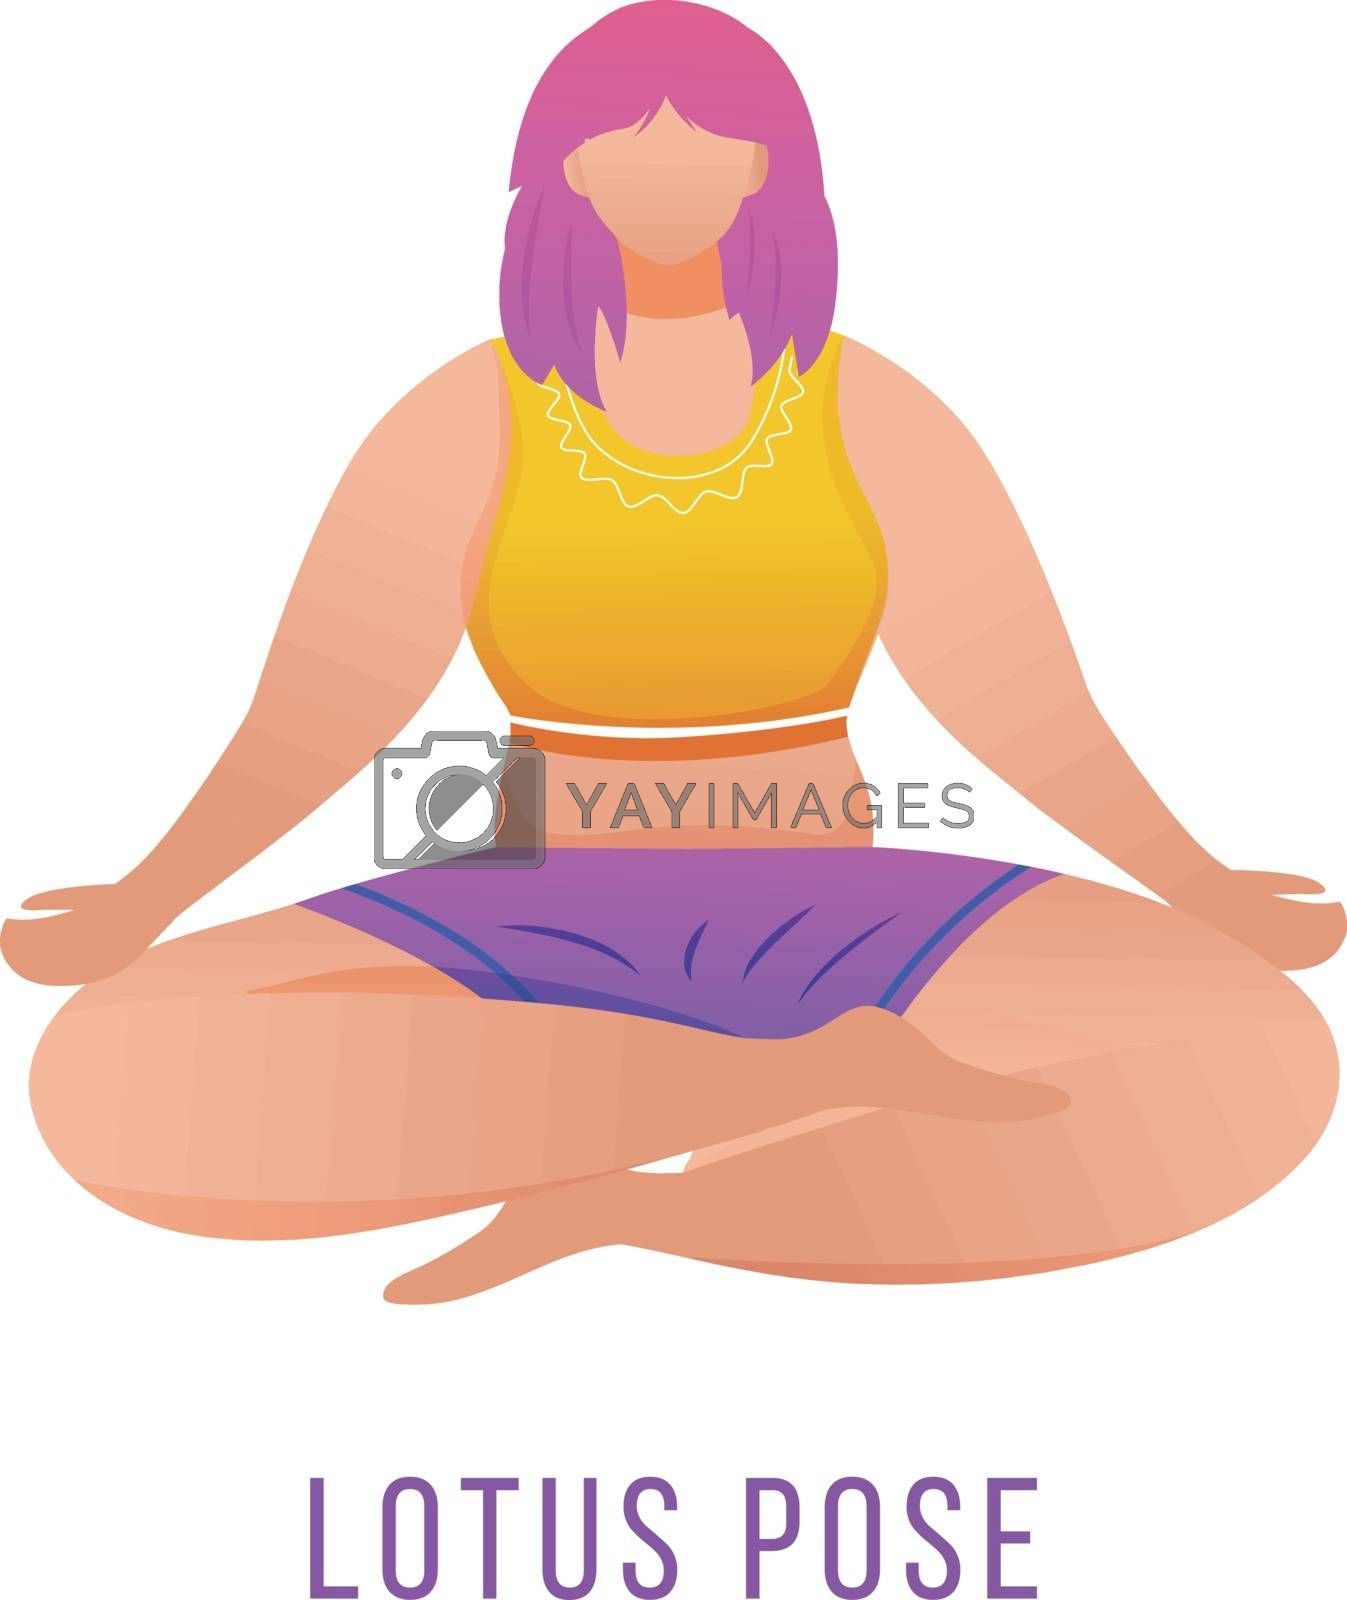 Lotus pose flat vector illustration. Padmasana. Caucausian woman doing yoga in orange and purple sportswear. Workout, fitness. Physical exercise. Isolated cartoon character on white background